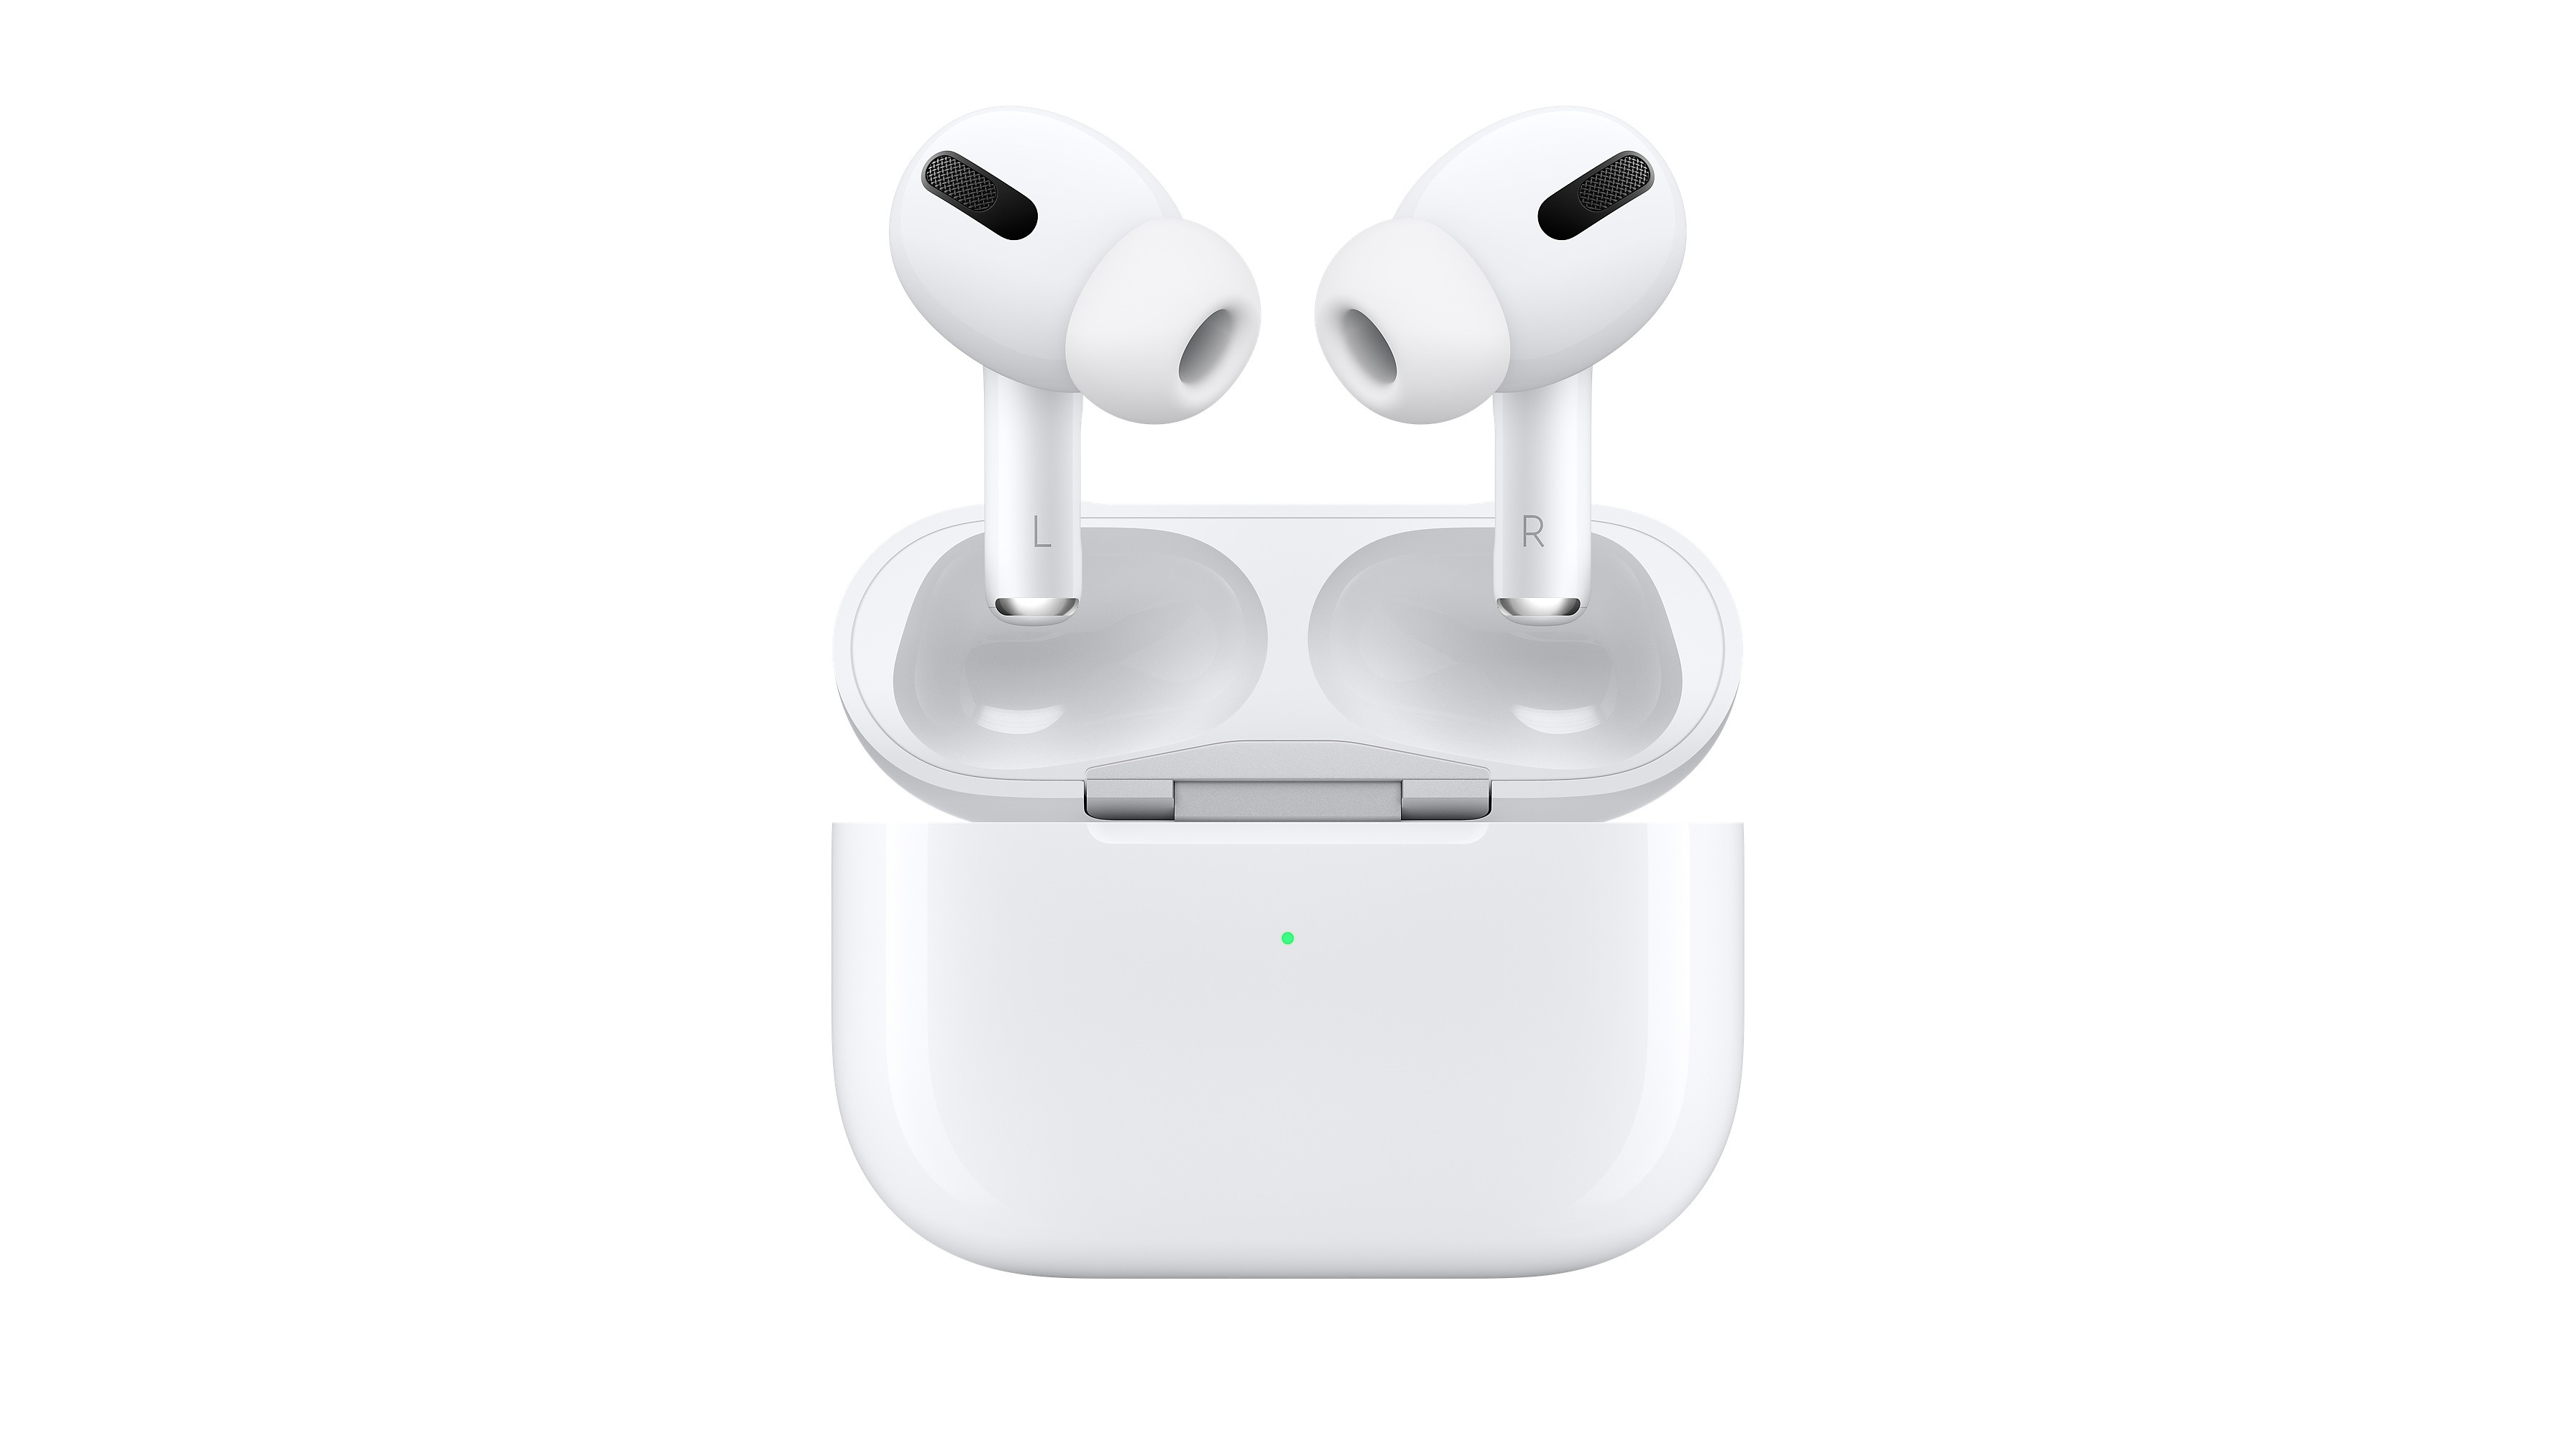 AirPods deals sales: AirPods Pro